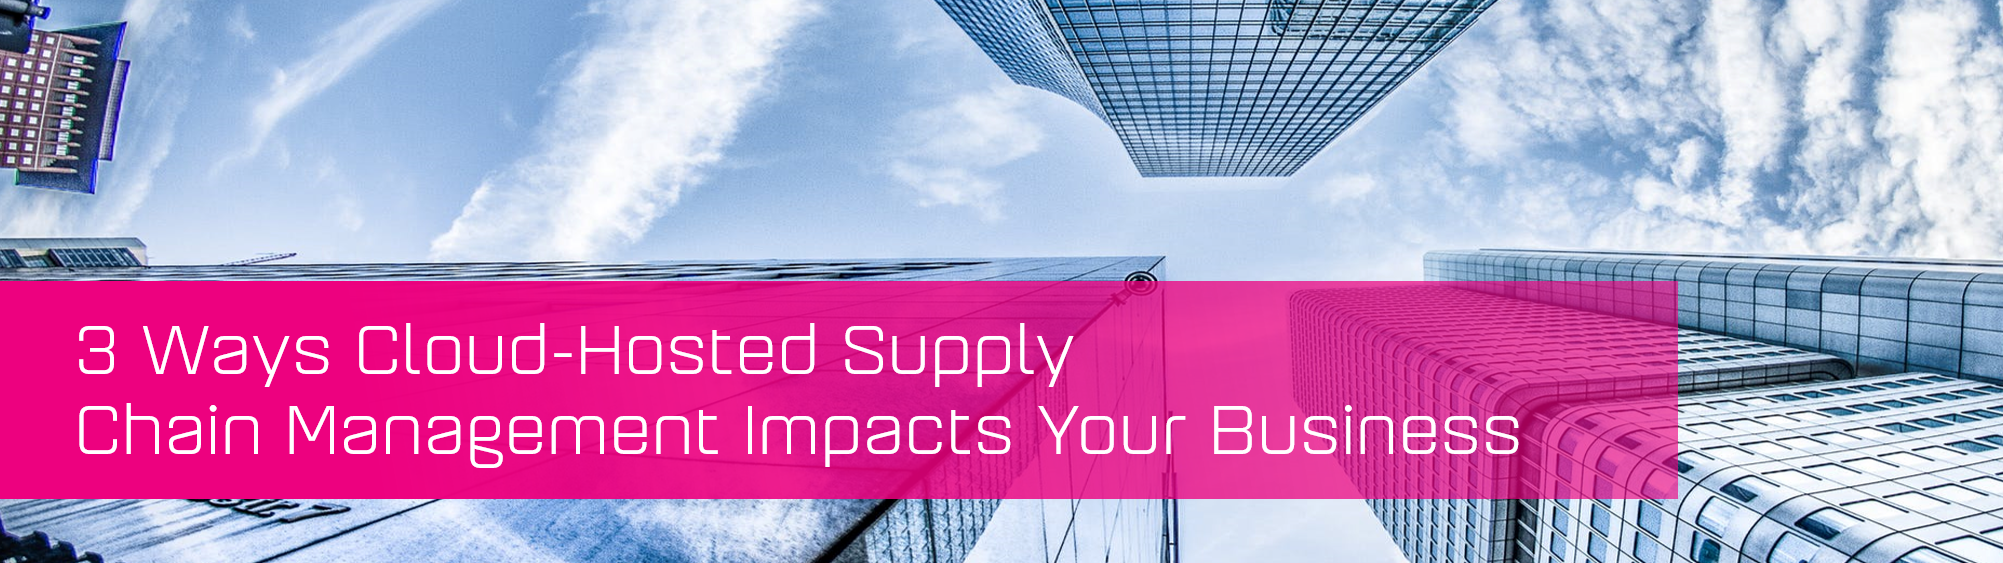 KCS SA - Blog - 3 ways cloud hosted supply chain impacts your business banner